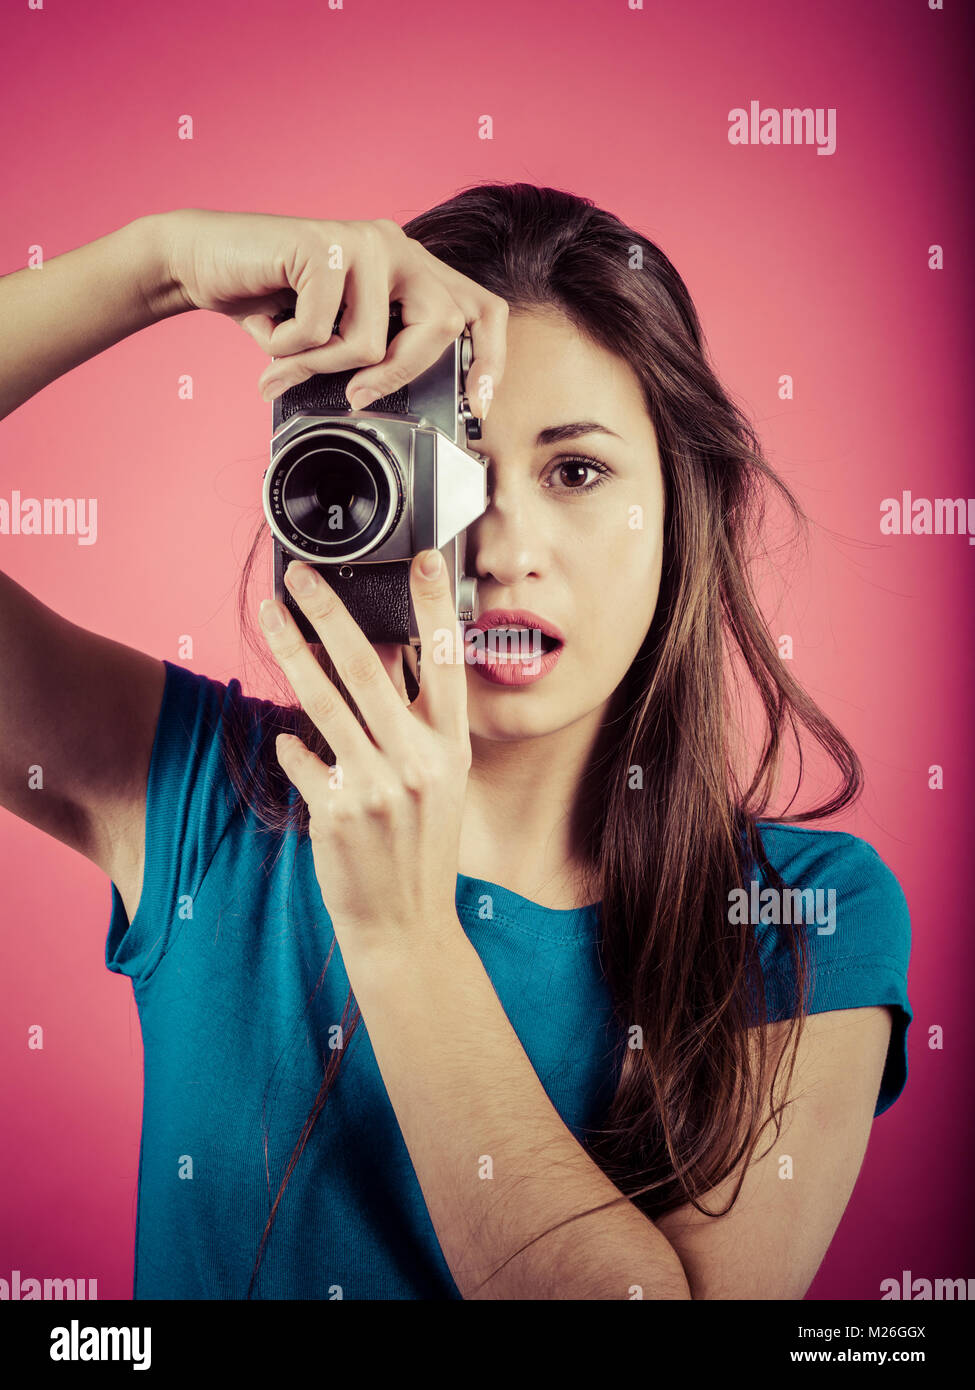 Photo of a beautiful woman pointing a vintage camera with a surprised look on her face. - Stock Image